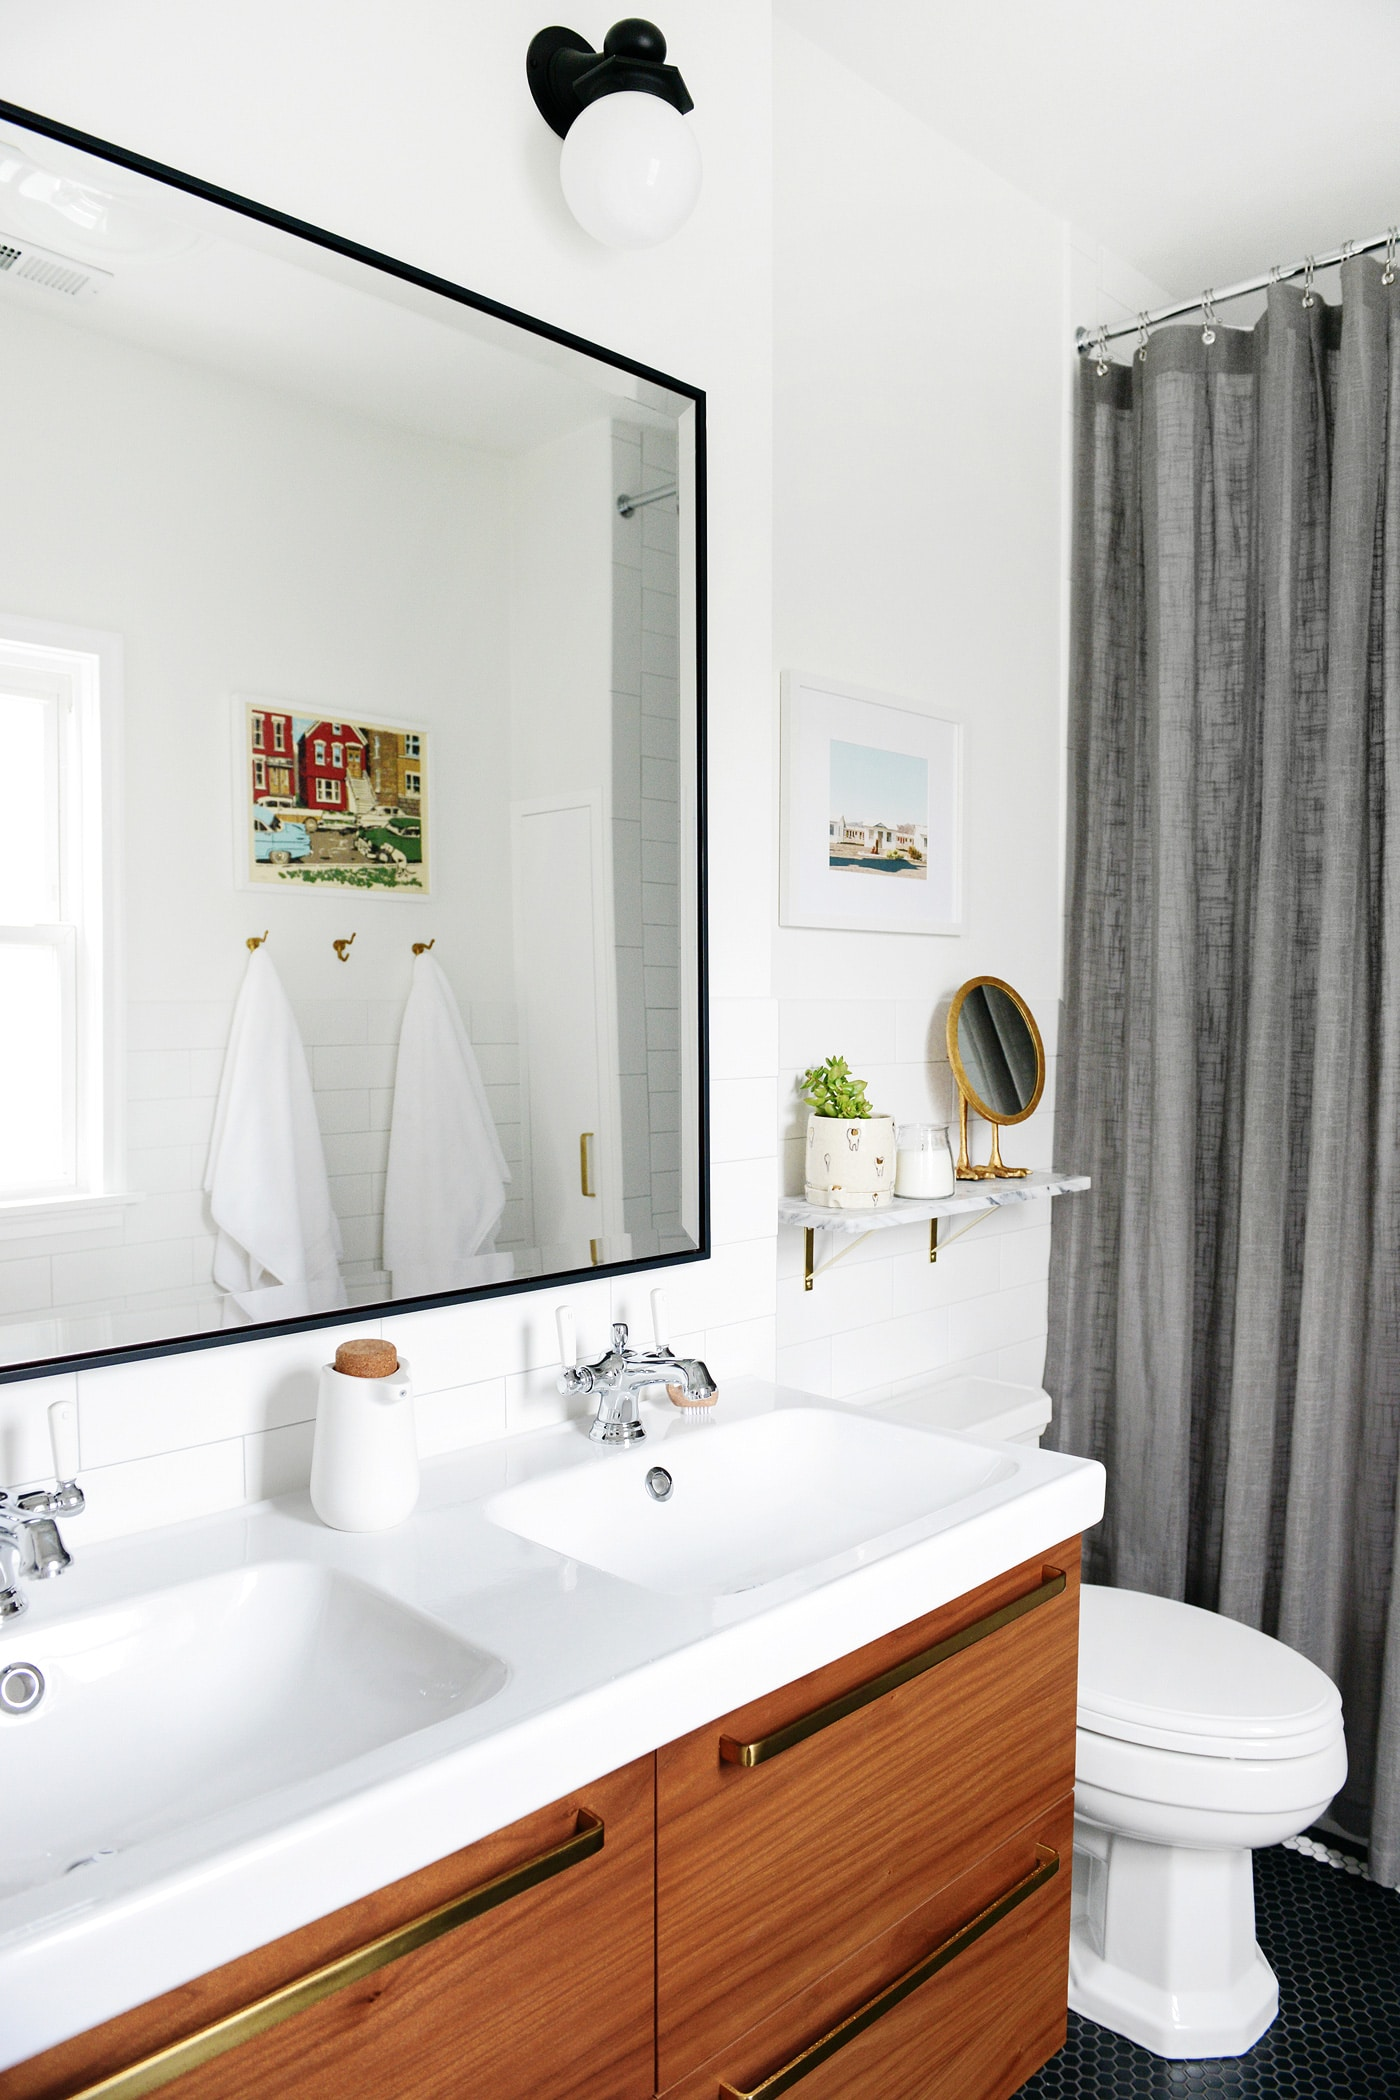 Spectacular It us been almost one year since we pleted our bathroom renovation We uve all but forgotten about the ten days of backbreaking tiling